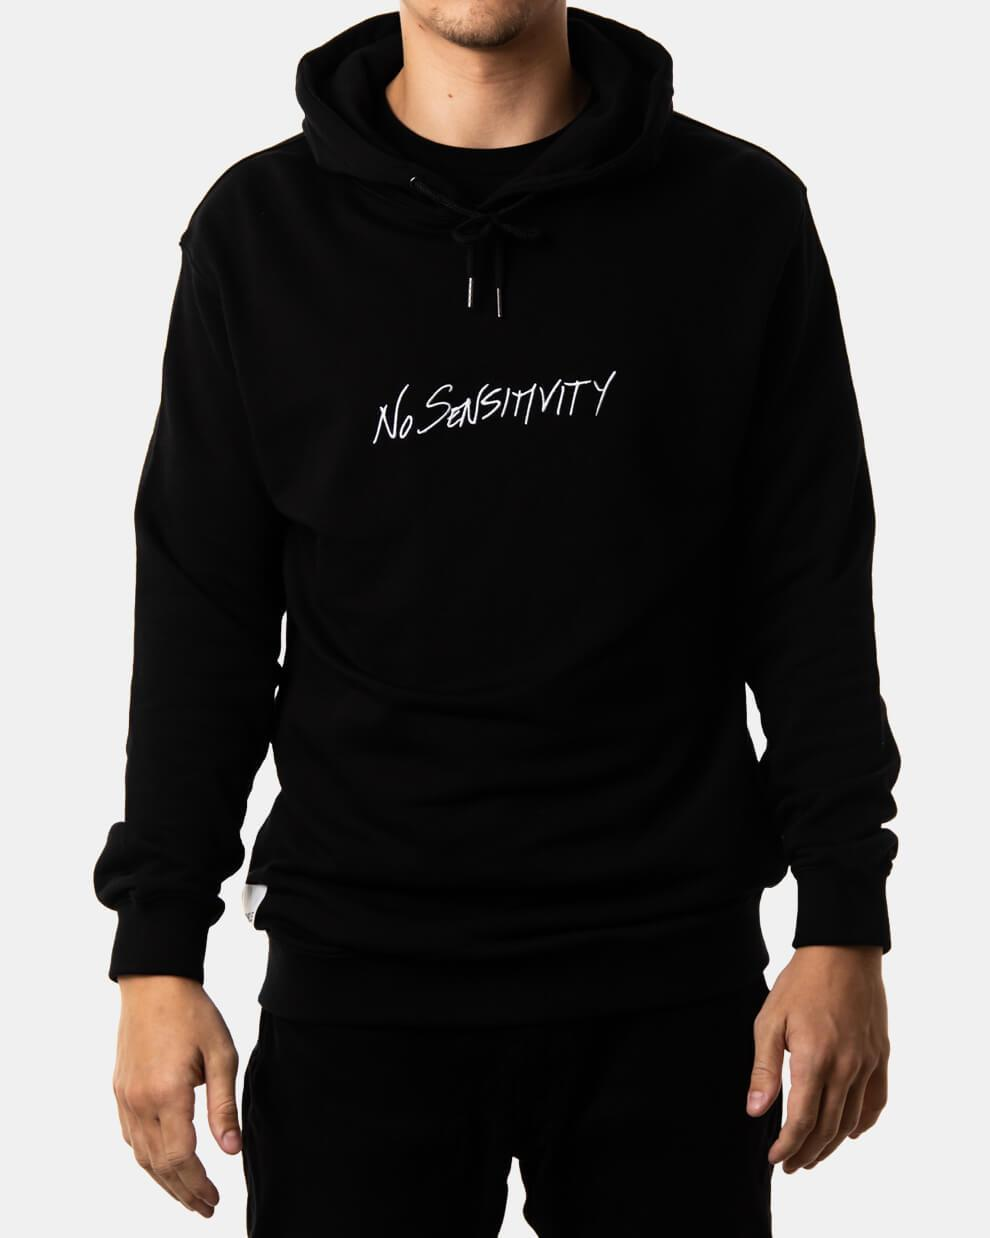 Shop the No Sensitivity Hoodie